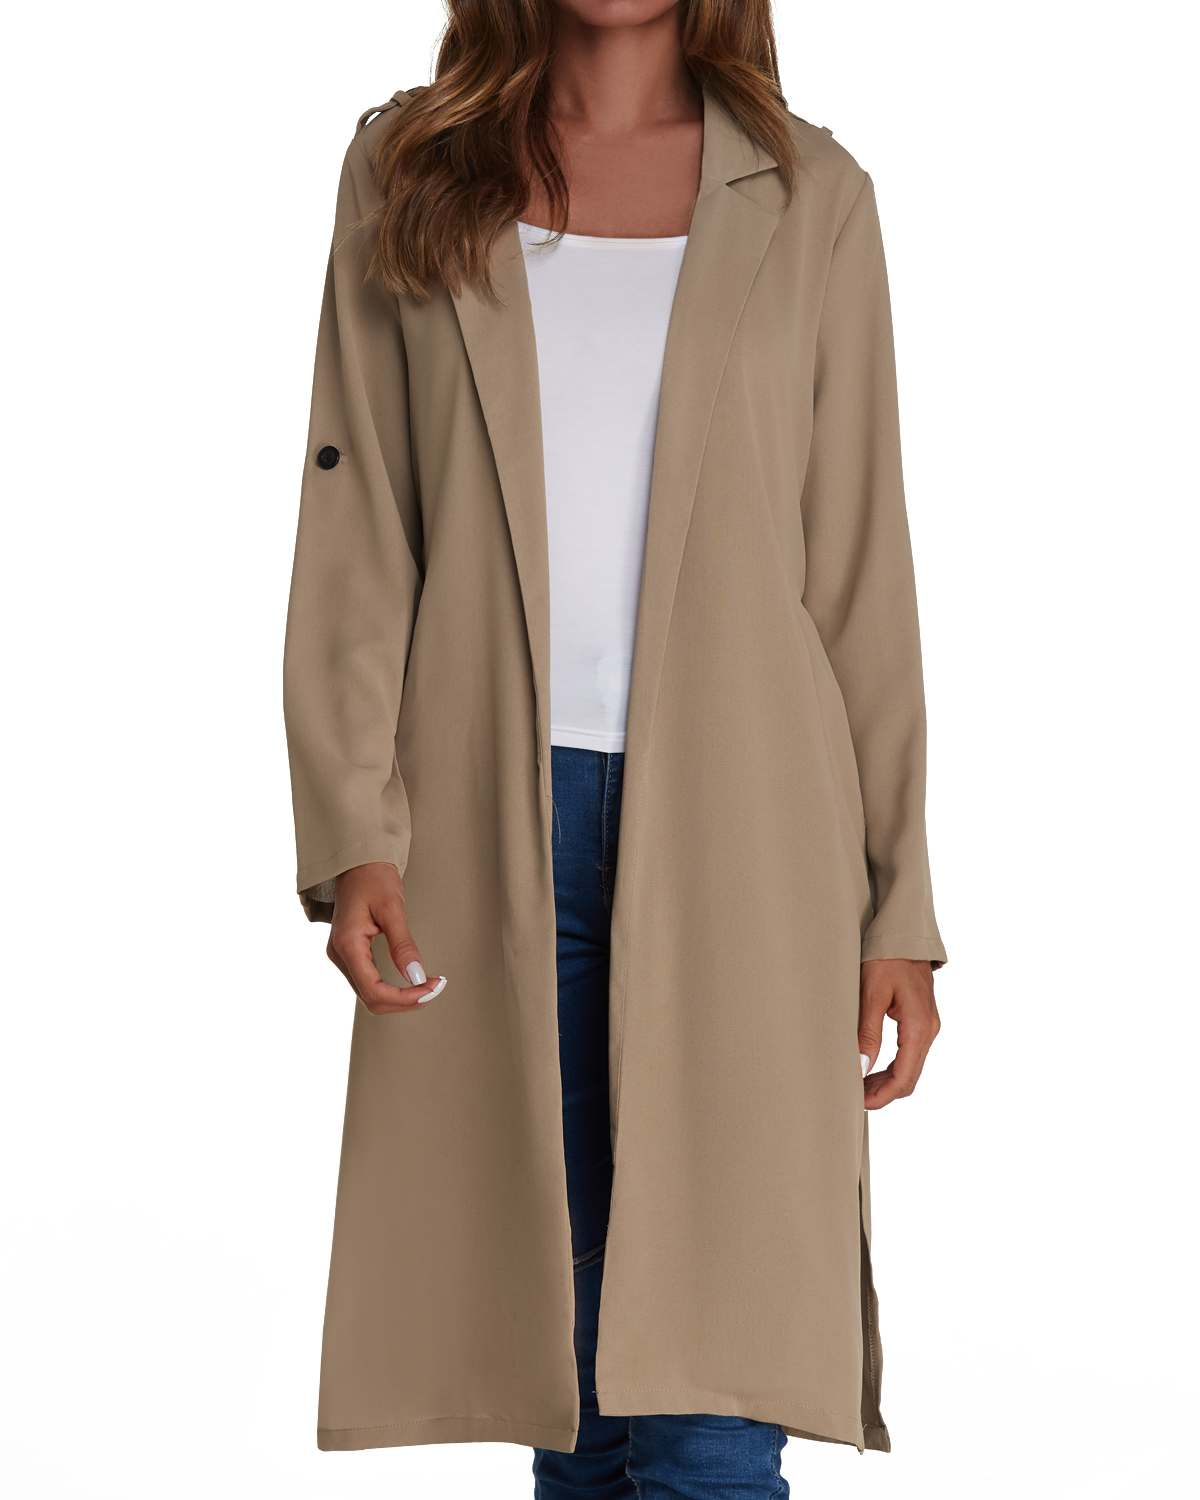 2XL Coats Women Spring Autumn Solid Full Sleeve Outerwear Long   Trench   Coat Casual Loose Coat Cardigan Overcoat Plus Size